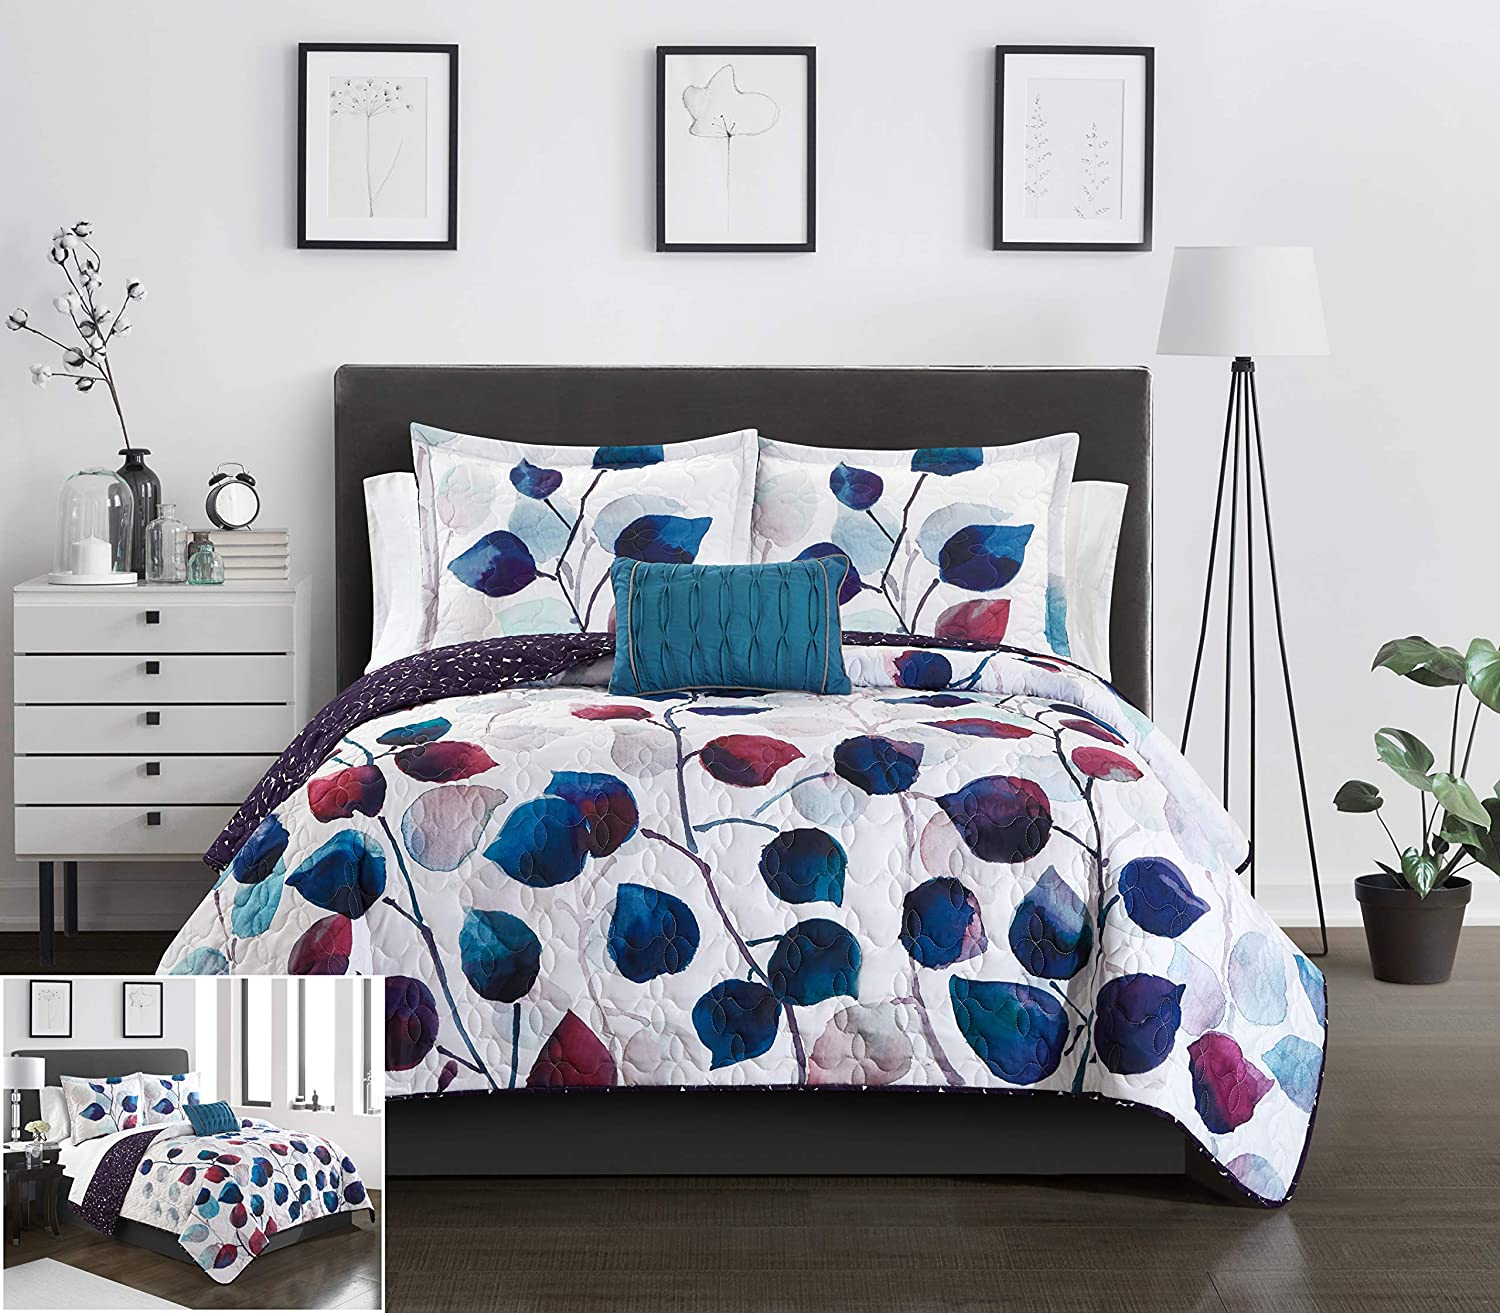 Chic Home Alecto 4 Piece Reversible Quilt Set Contemporary Watercolor Floral Theme Design Bedding - Decorative Pillow Shams Included, King, Multi Color